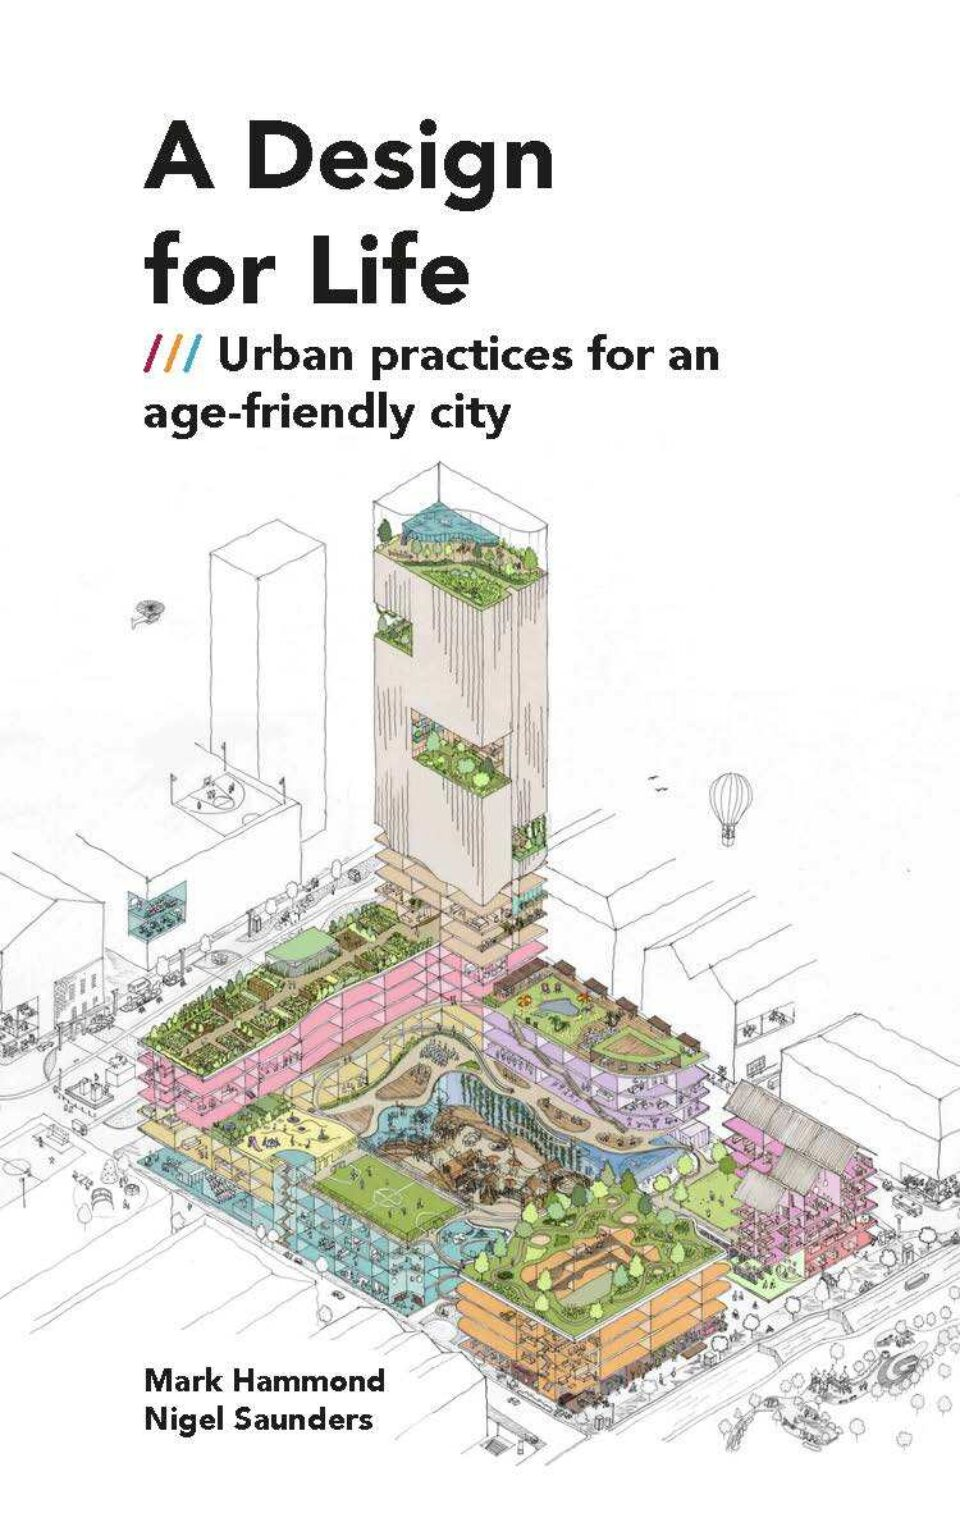 A Design for Life: Urban practices for an age-friendly city